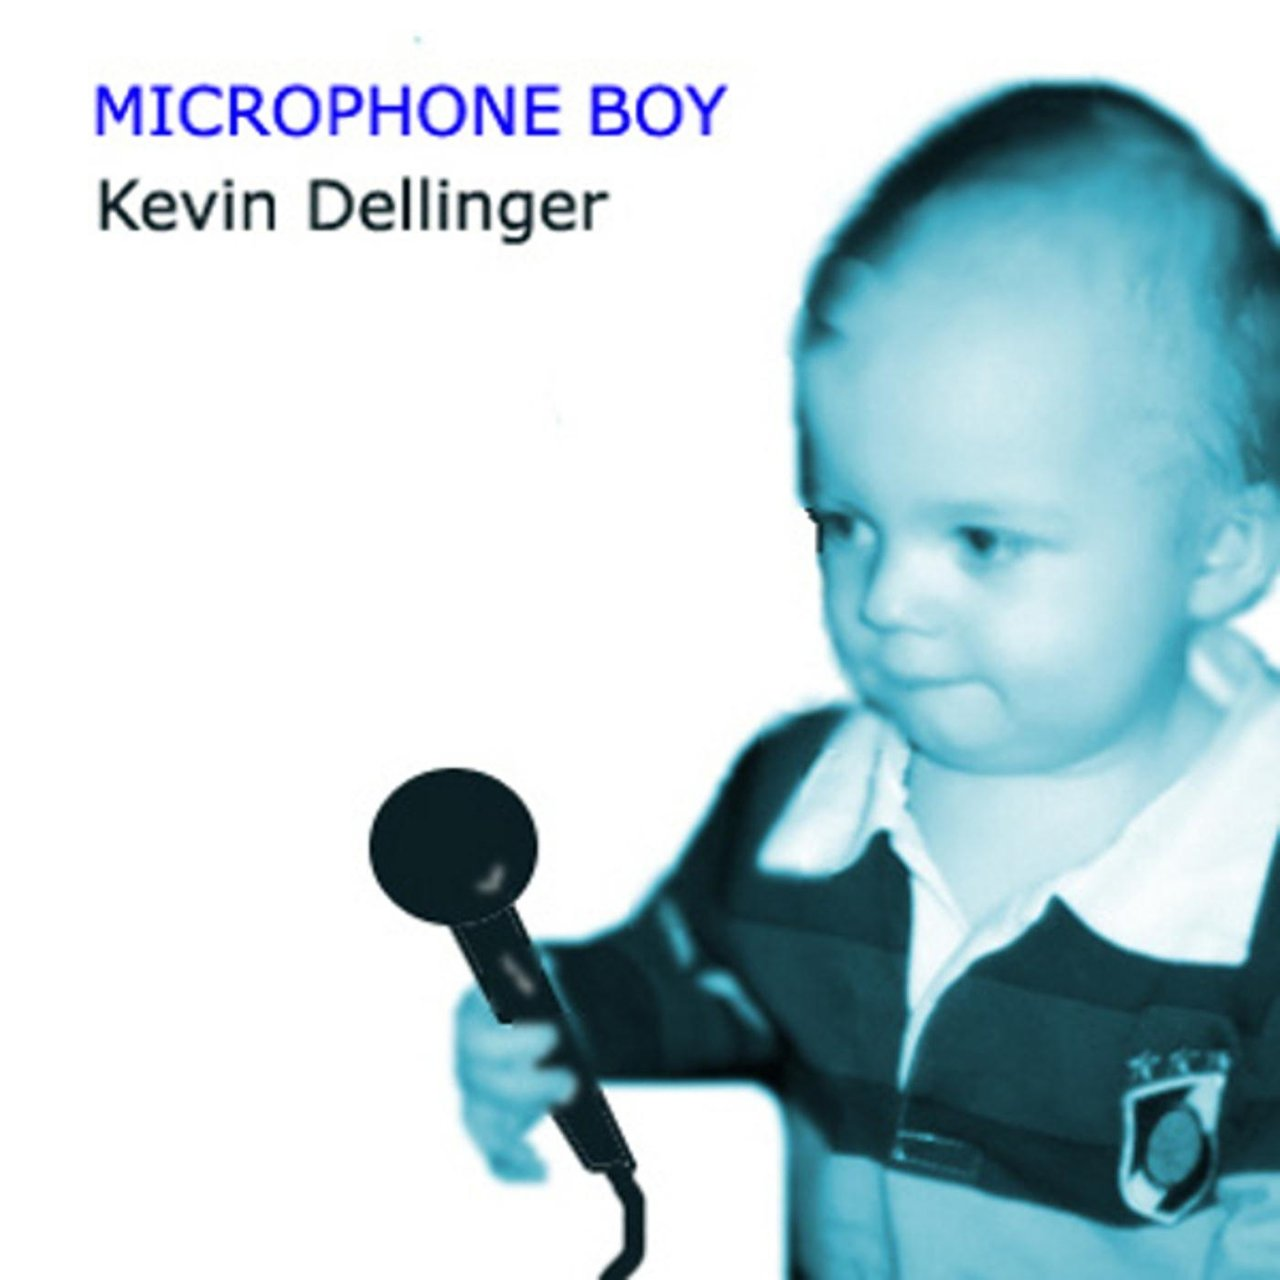 Microphone Boy